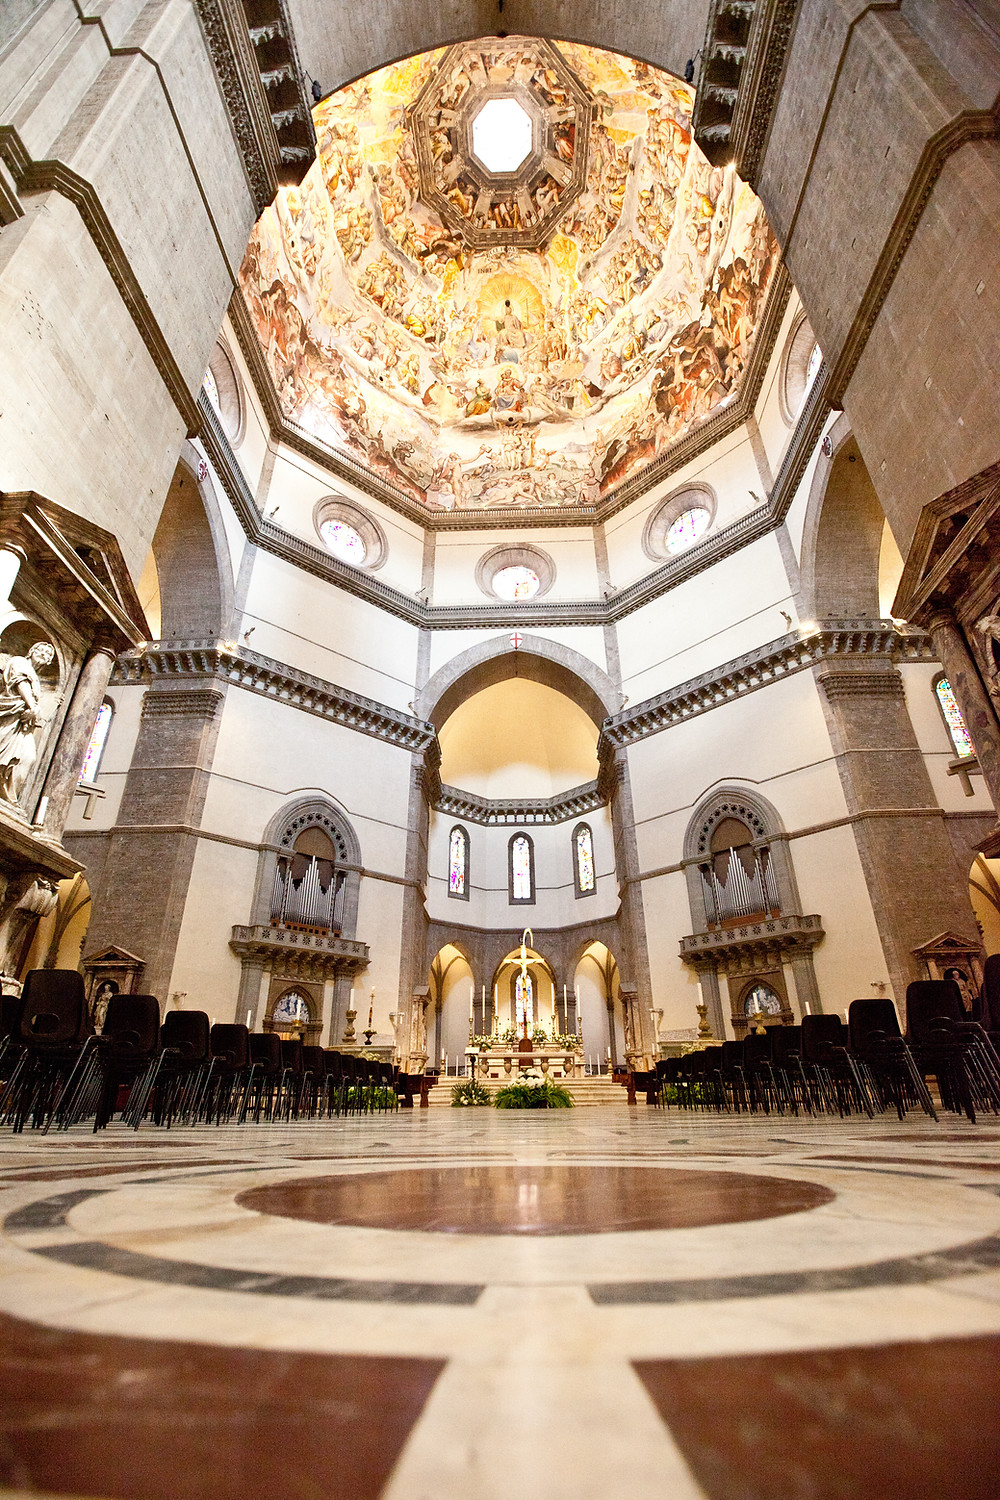 the rather spare interior of Florence Cathedral